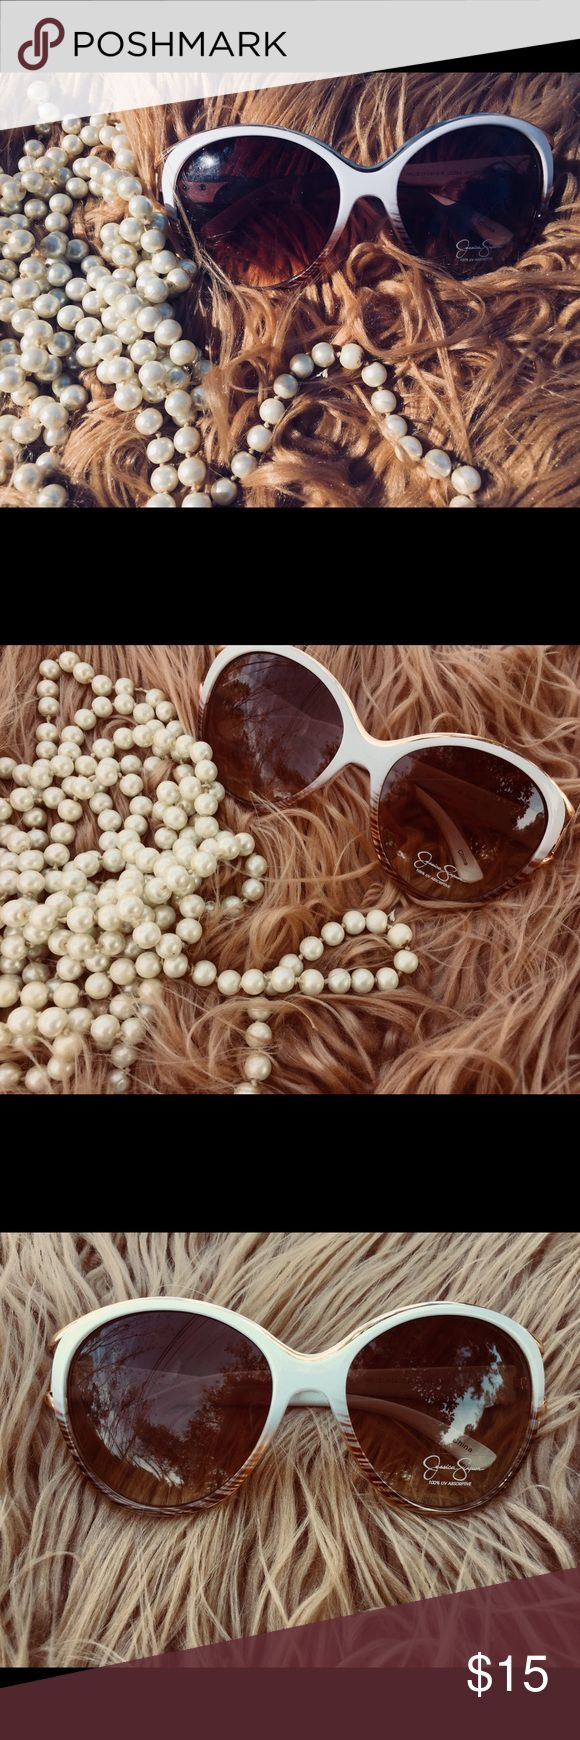 NWT- Beautiful Jessica Simpson sunglasses Lenses are pretty dark and the frames are white and brown. These are a great staple piece and look good on any facial type! Jessica Simpson Accessories Glasses